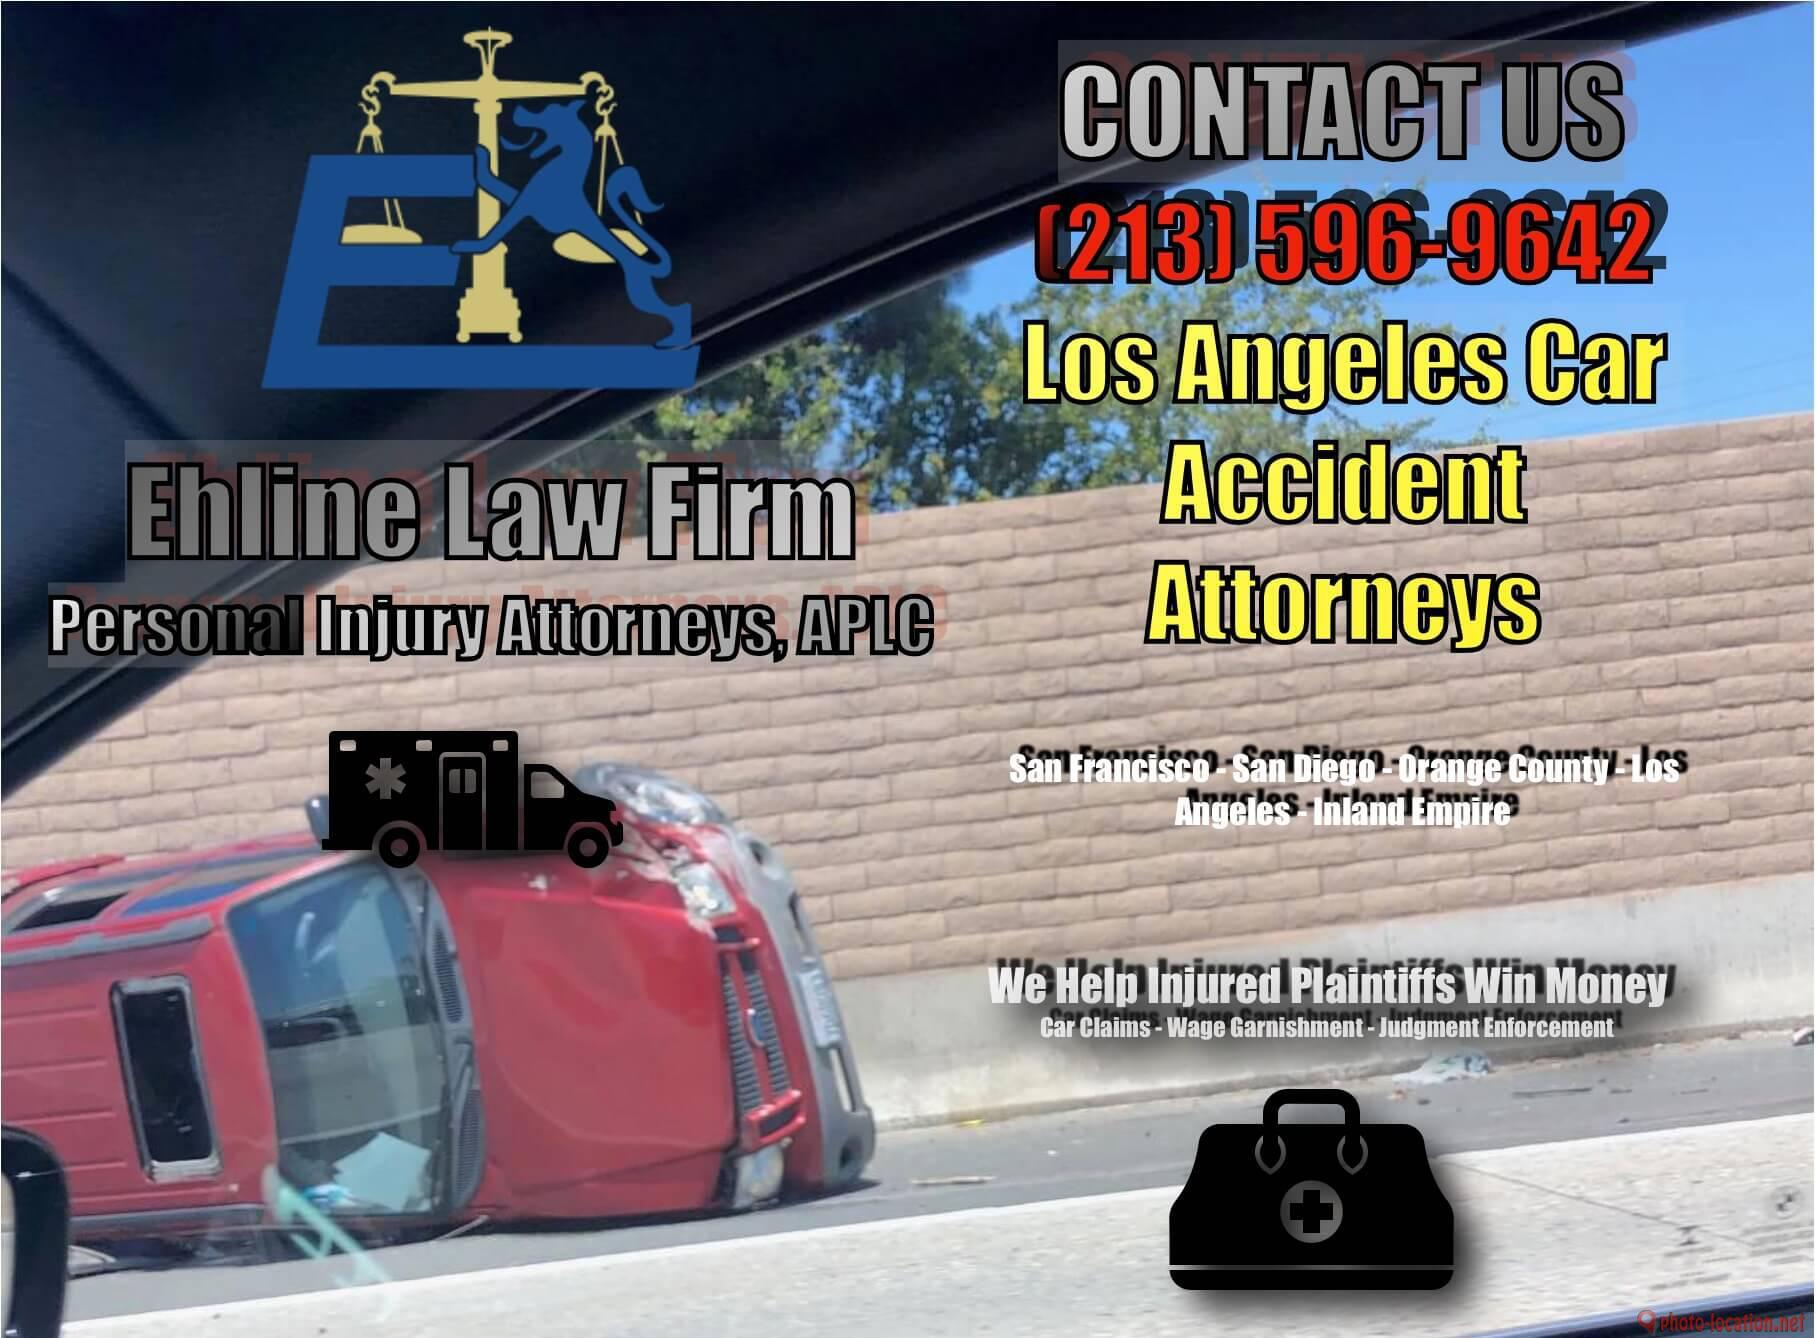 Superior car accident expertise and service with confidentiality.